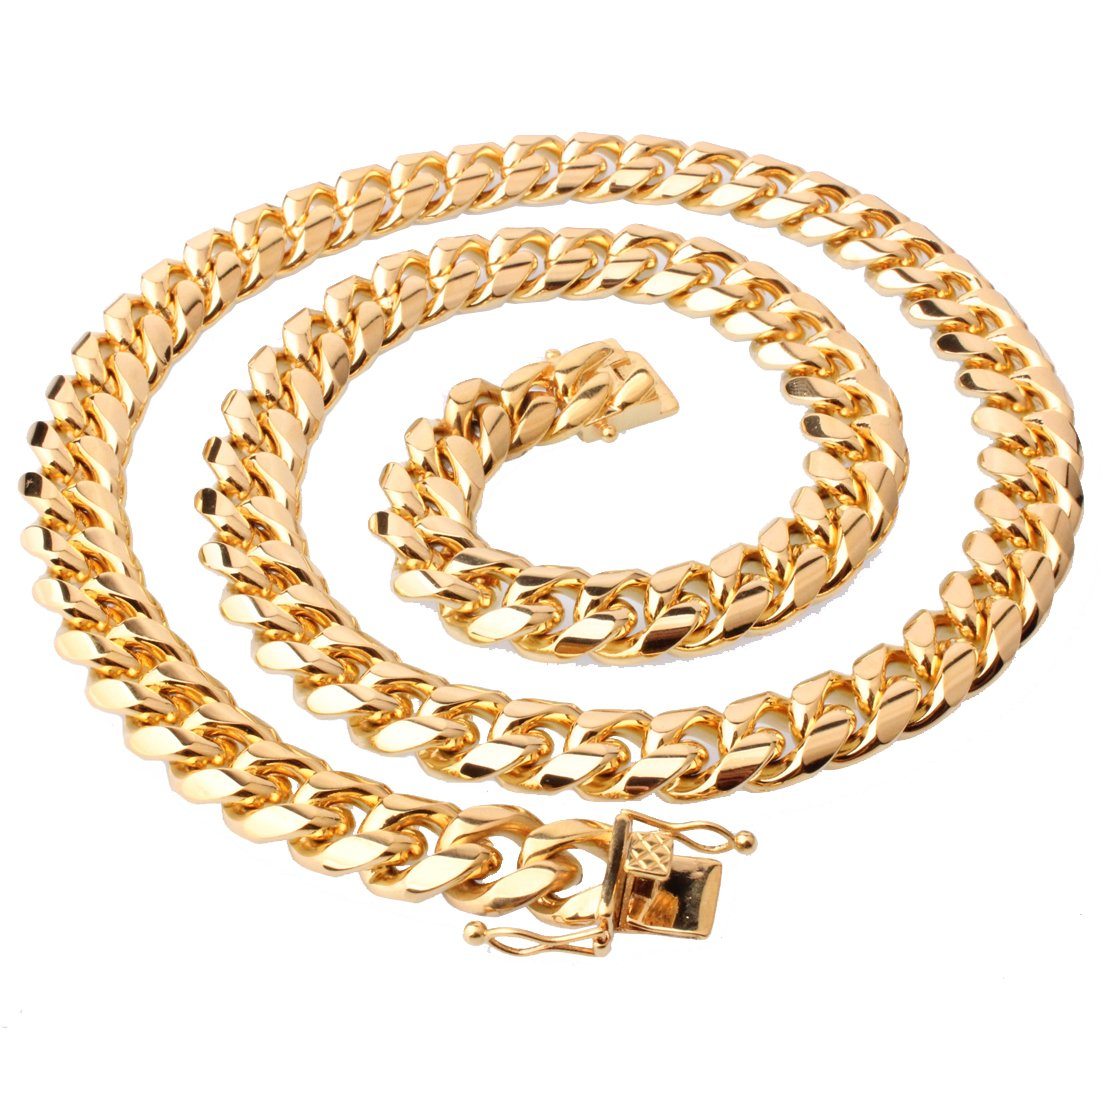 MUYING JEWELRY Miami Cuban Curb Link Chain 18K Gold 14mm Stainless Steel Necklace Or Bracelet for Men Unisex 7-38